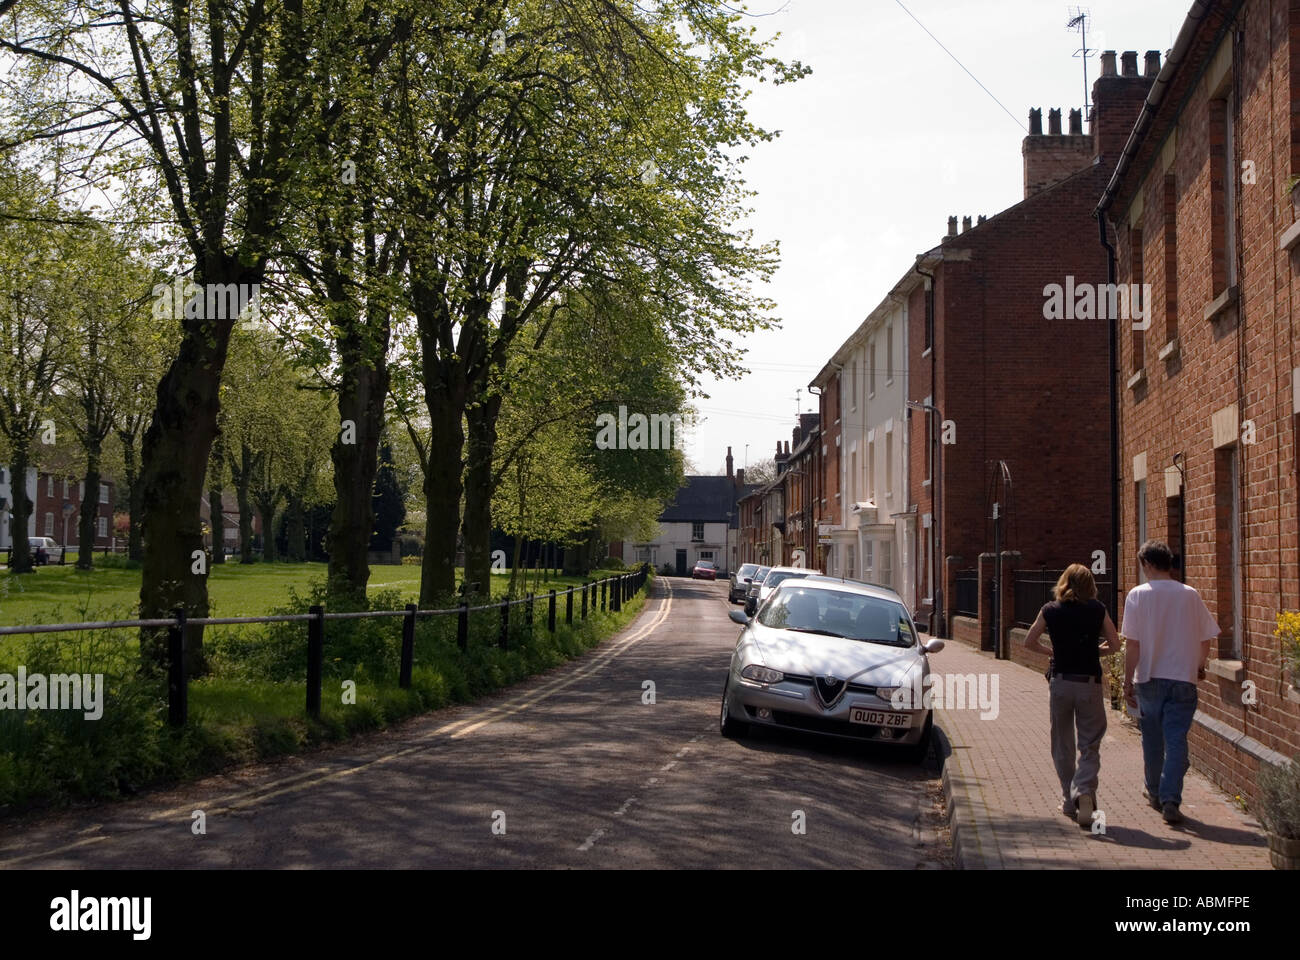 Stony Stratford City of Milton Keynes - Stock Image